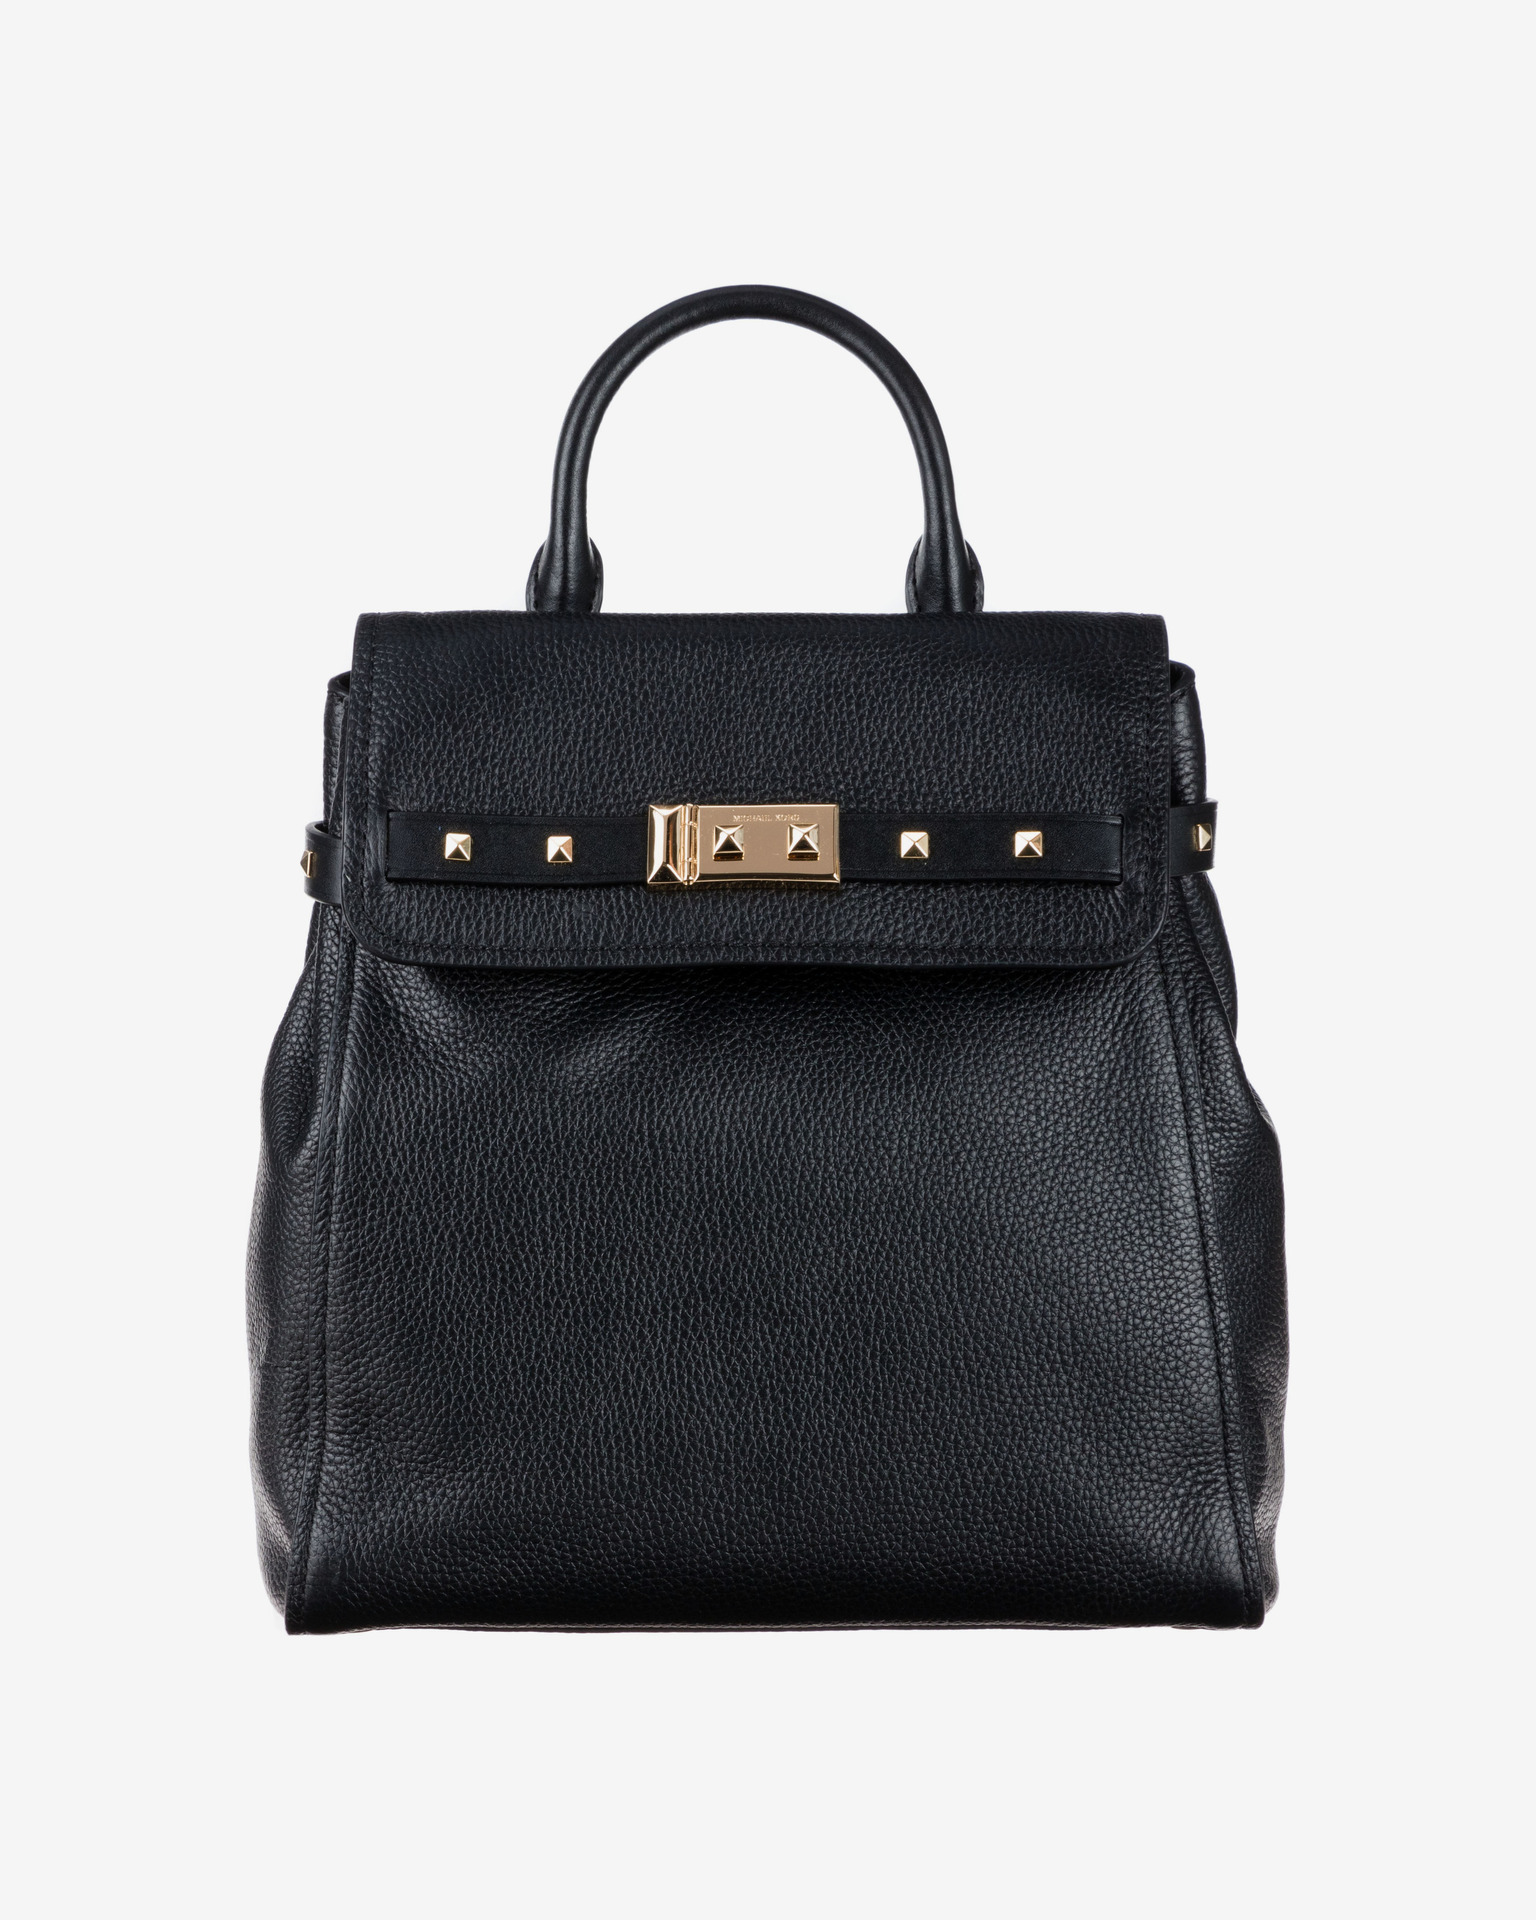 Addison Medium Batoh Michael Kors